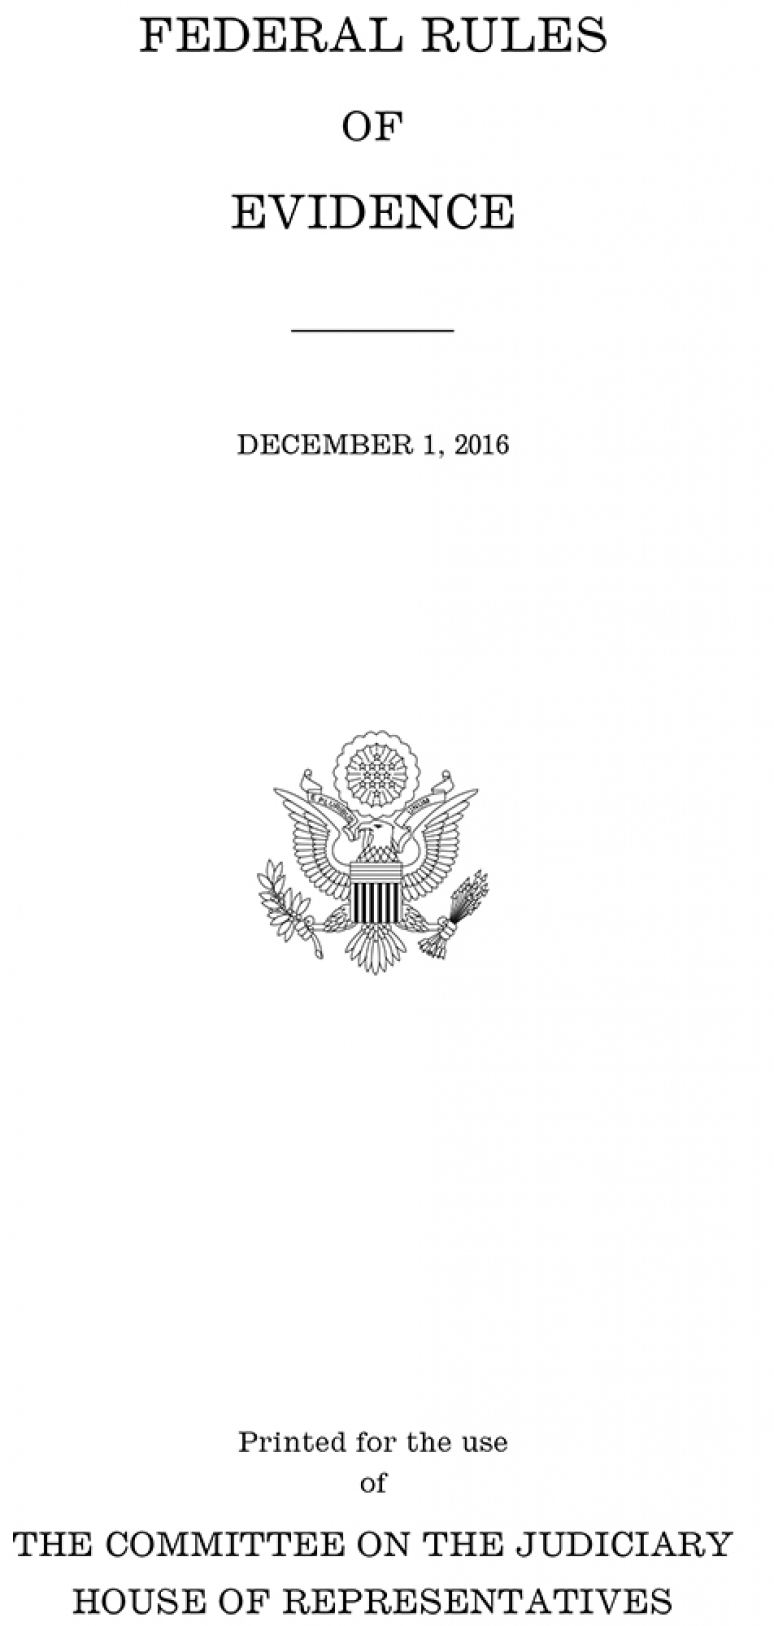 Federal Rules Of Evidence, December 1, 2015